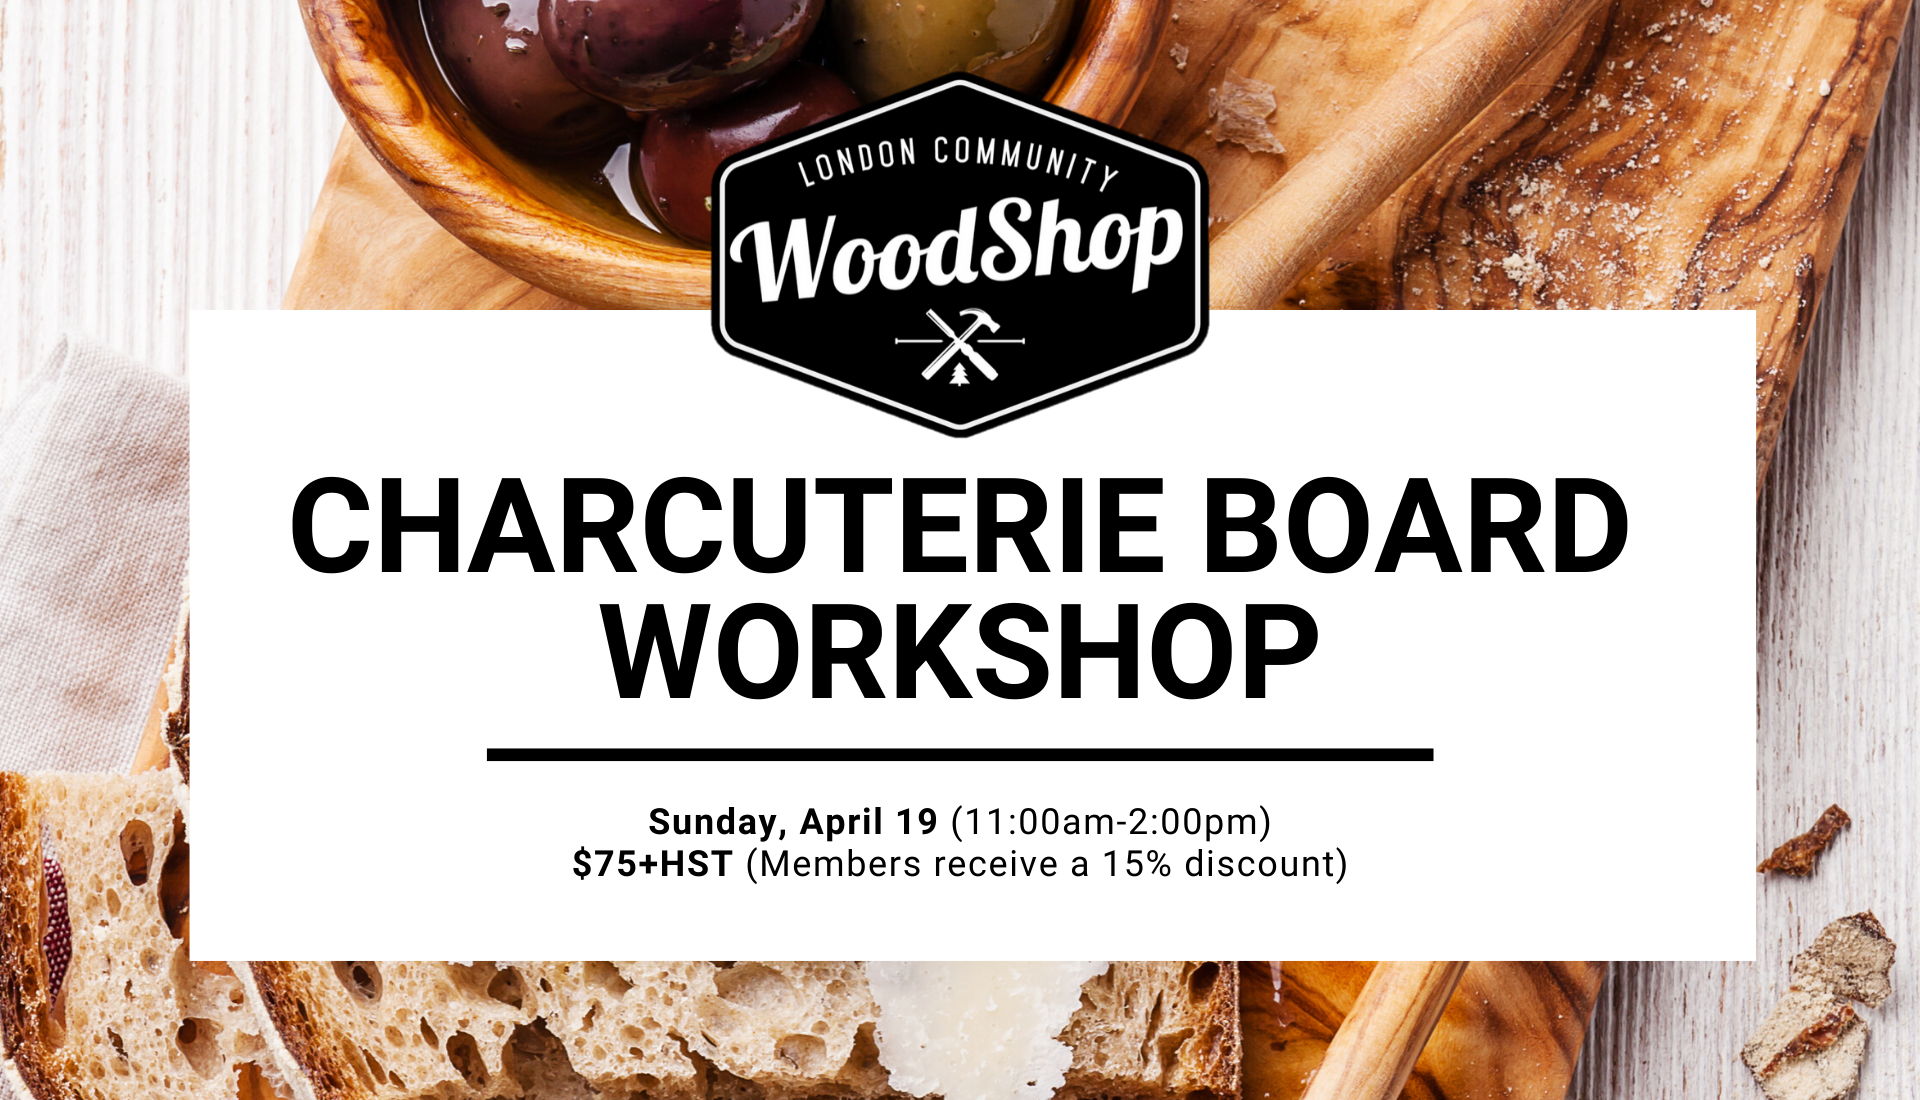 Sunday, April 19 11-2pm Charcuterie Board Workshop